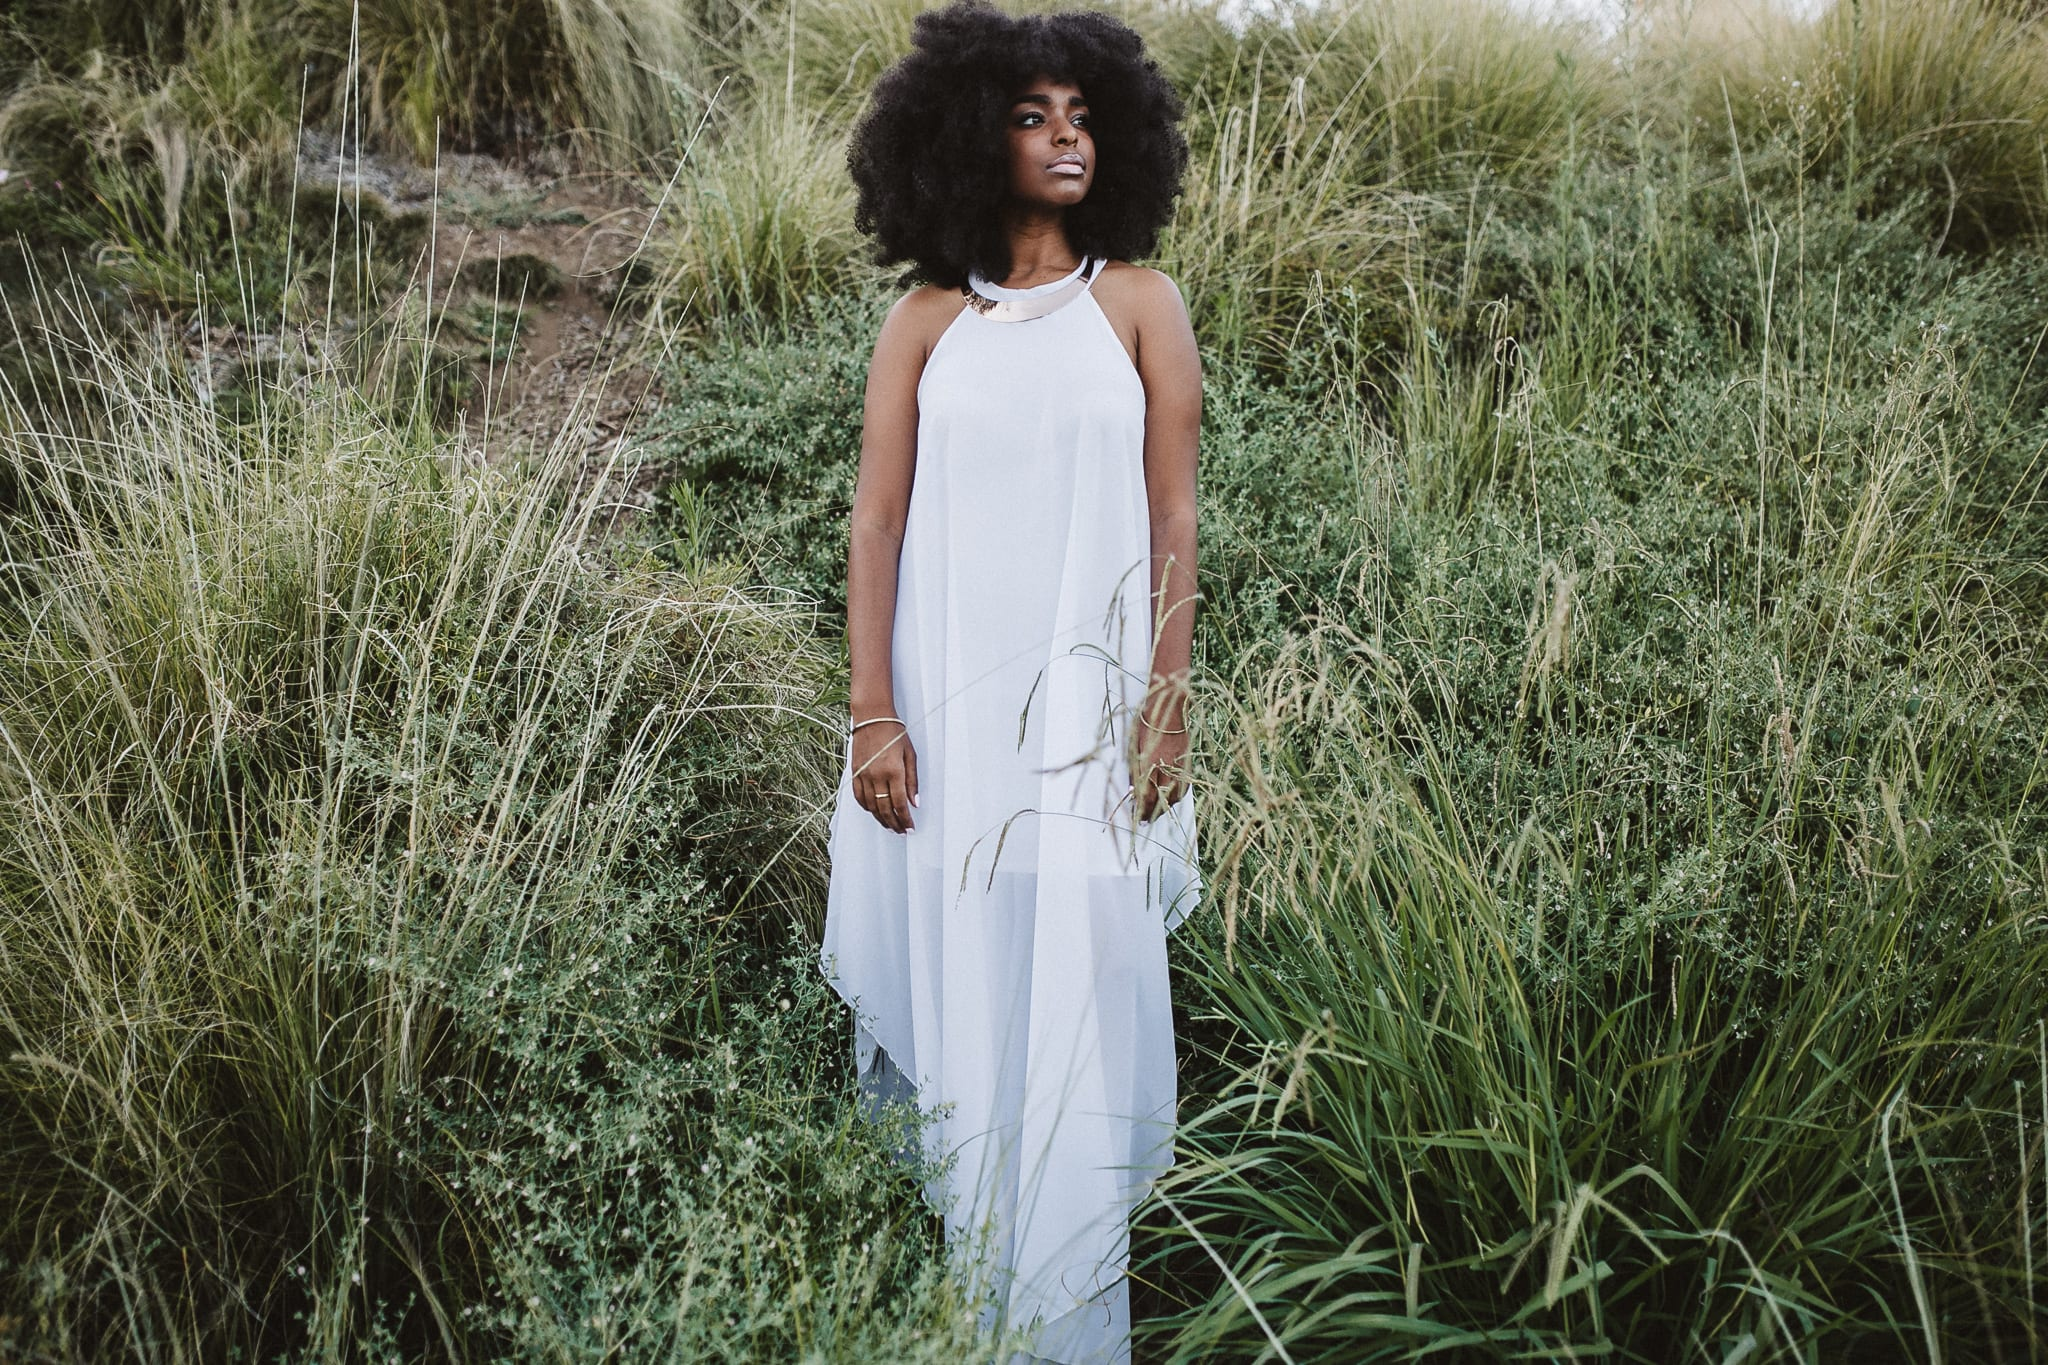 sundial-bridge-california-portrait-photographer-black-afro-queen-birthday-12